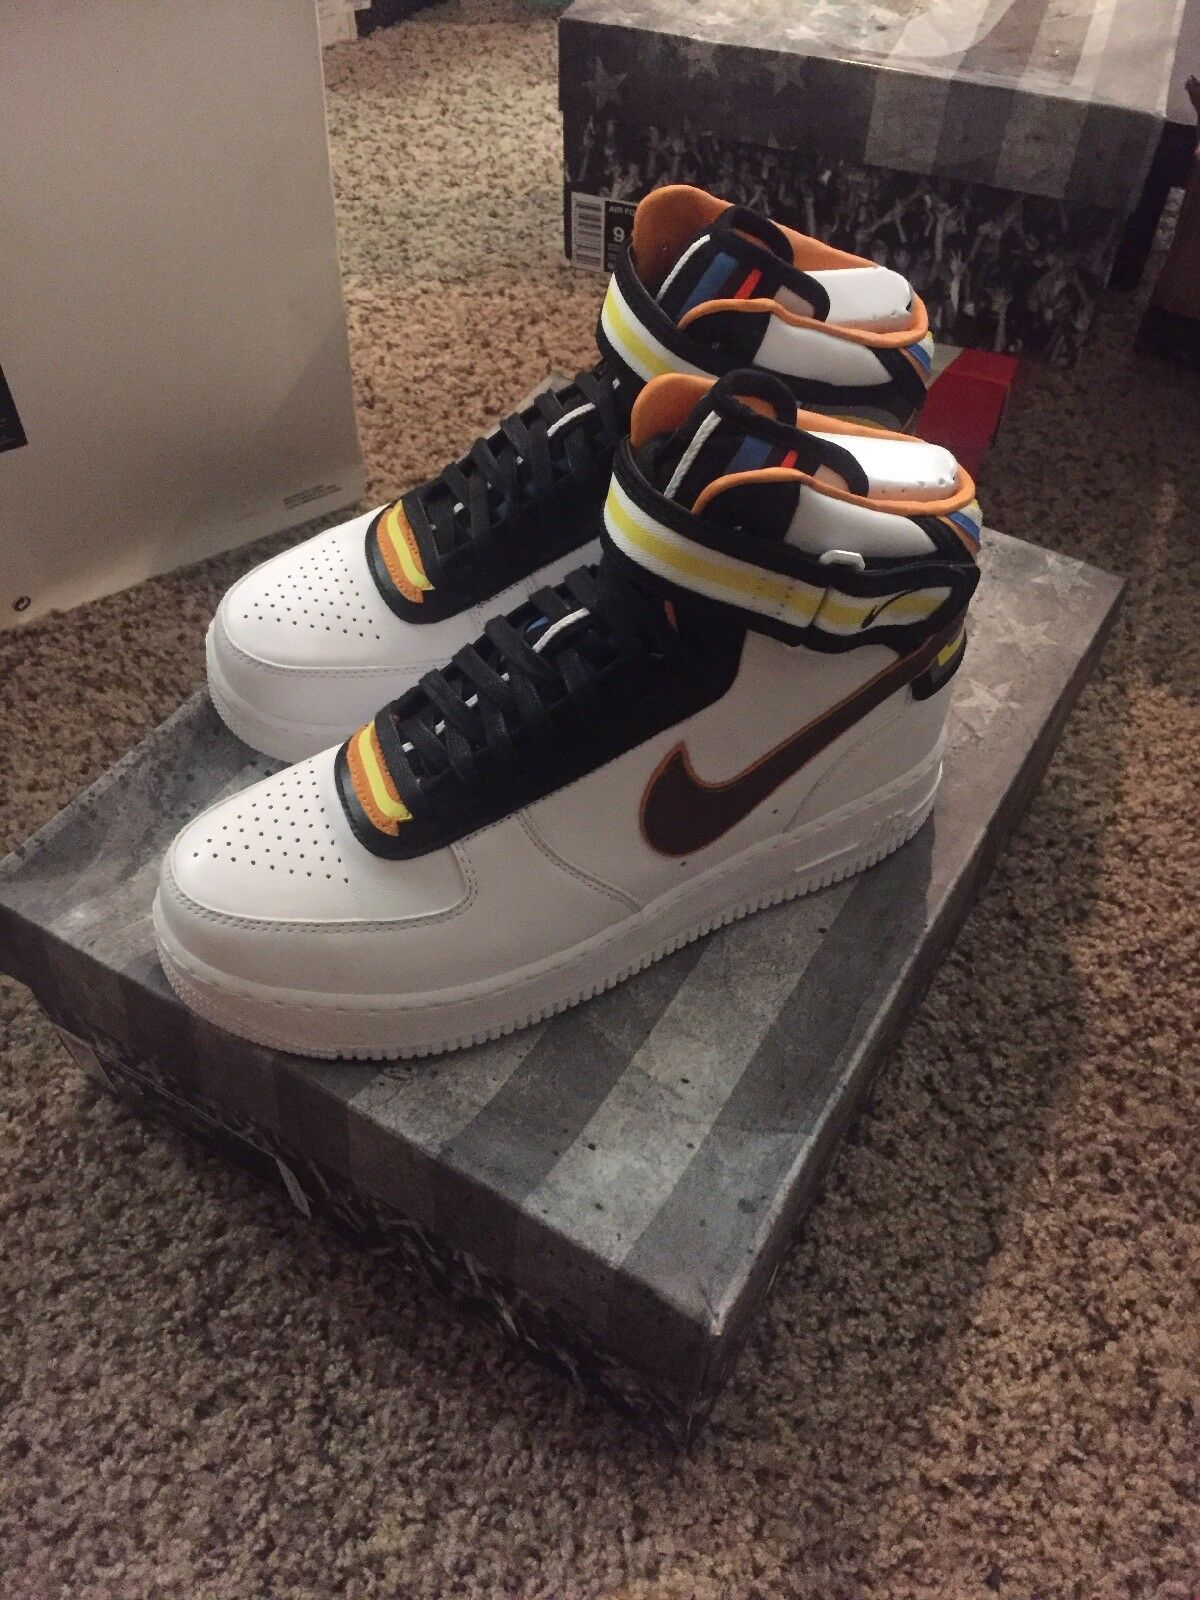 Nike Air Force 1 Mid Sp TISCI US9.5 677130-120